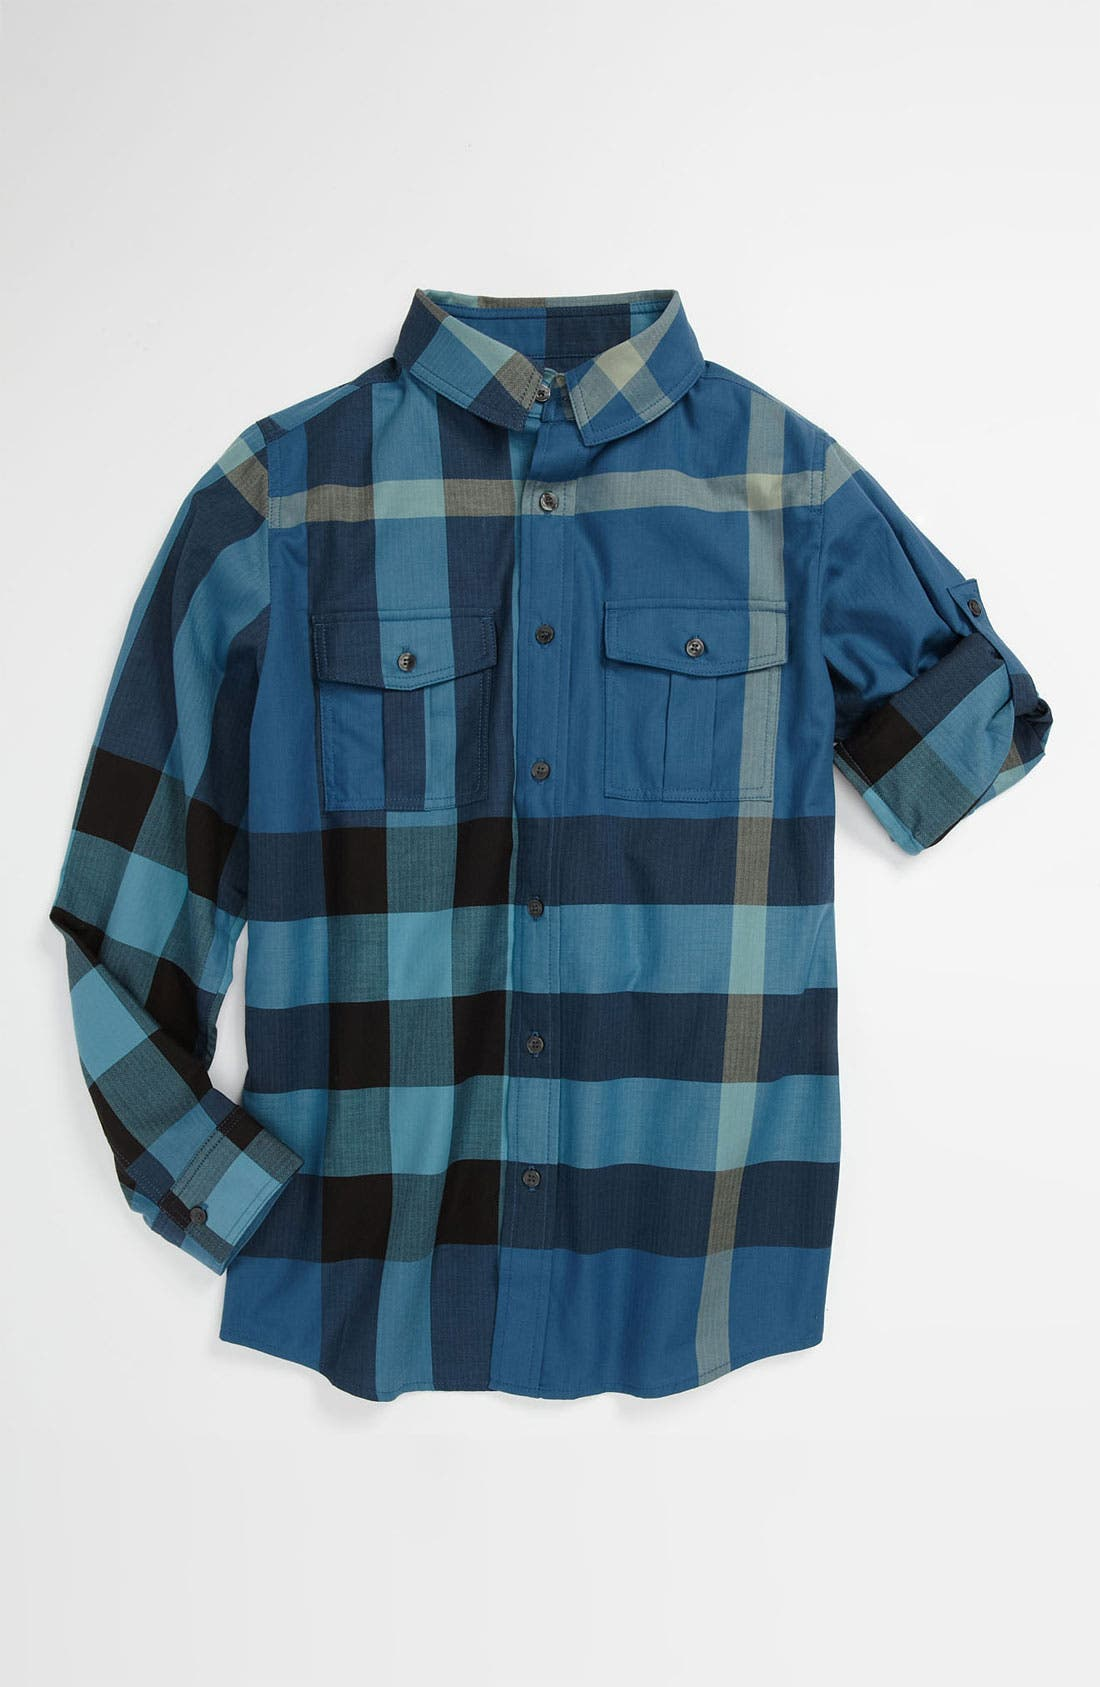 Alternate Image 1 Selected - Burberry 'Slough' Woven Shirt (Big Boys)